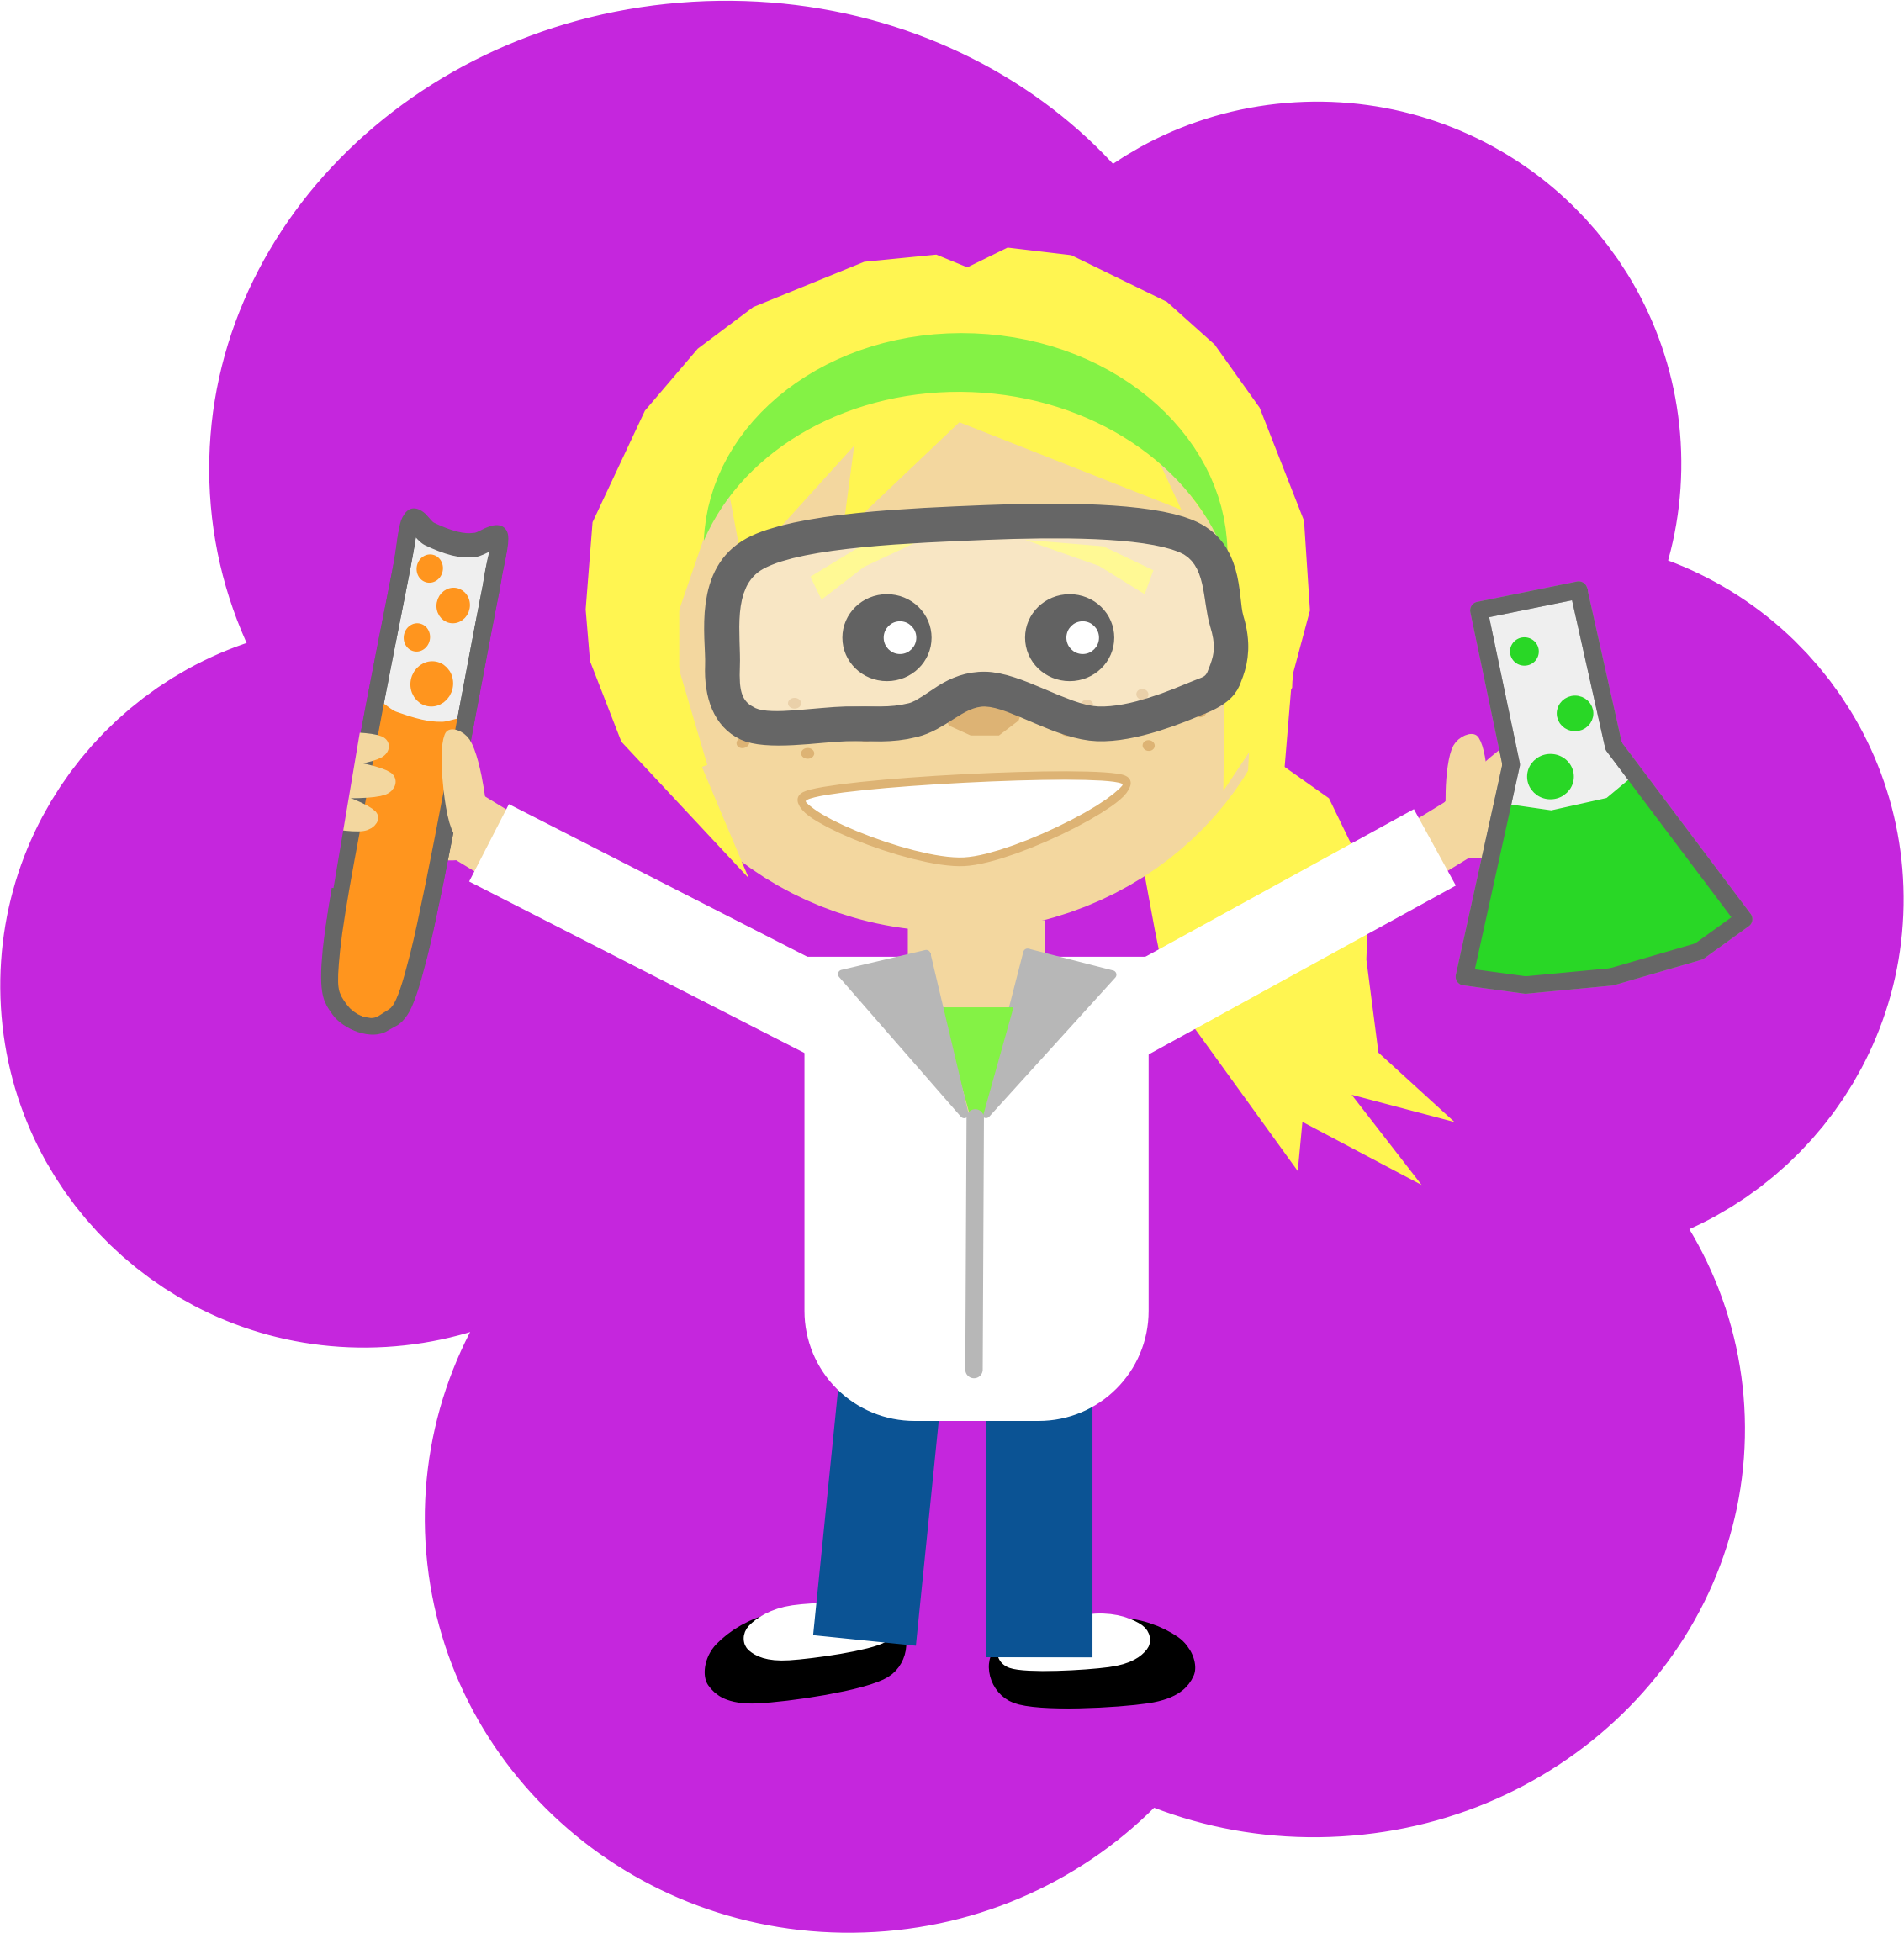 Fraction clipart common. Science girl with activities